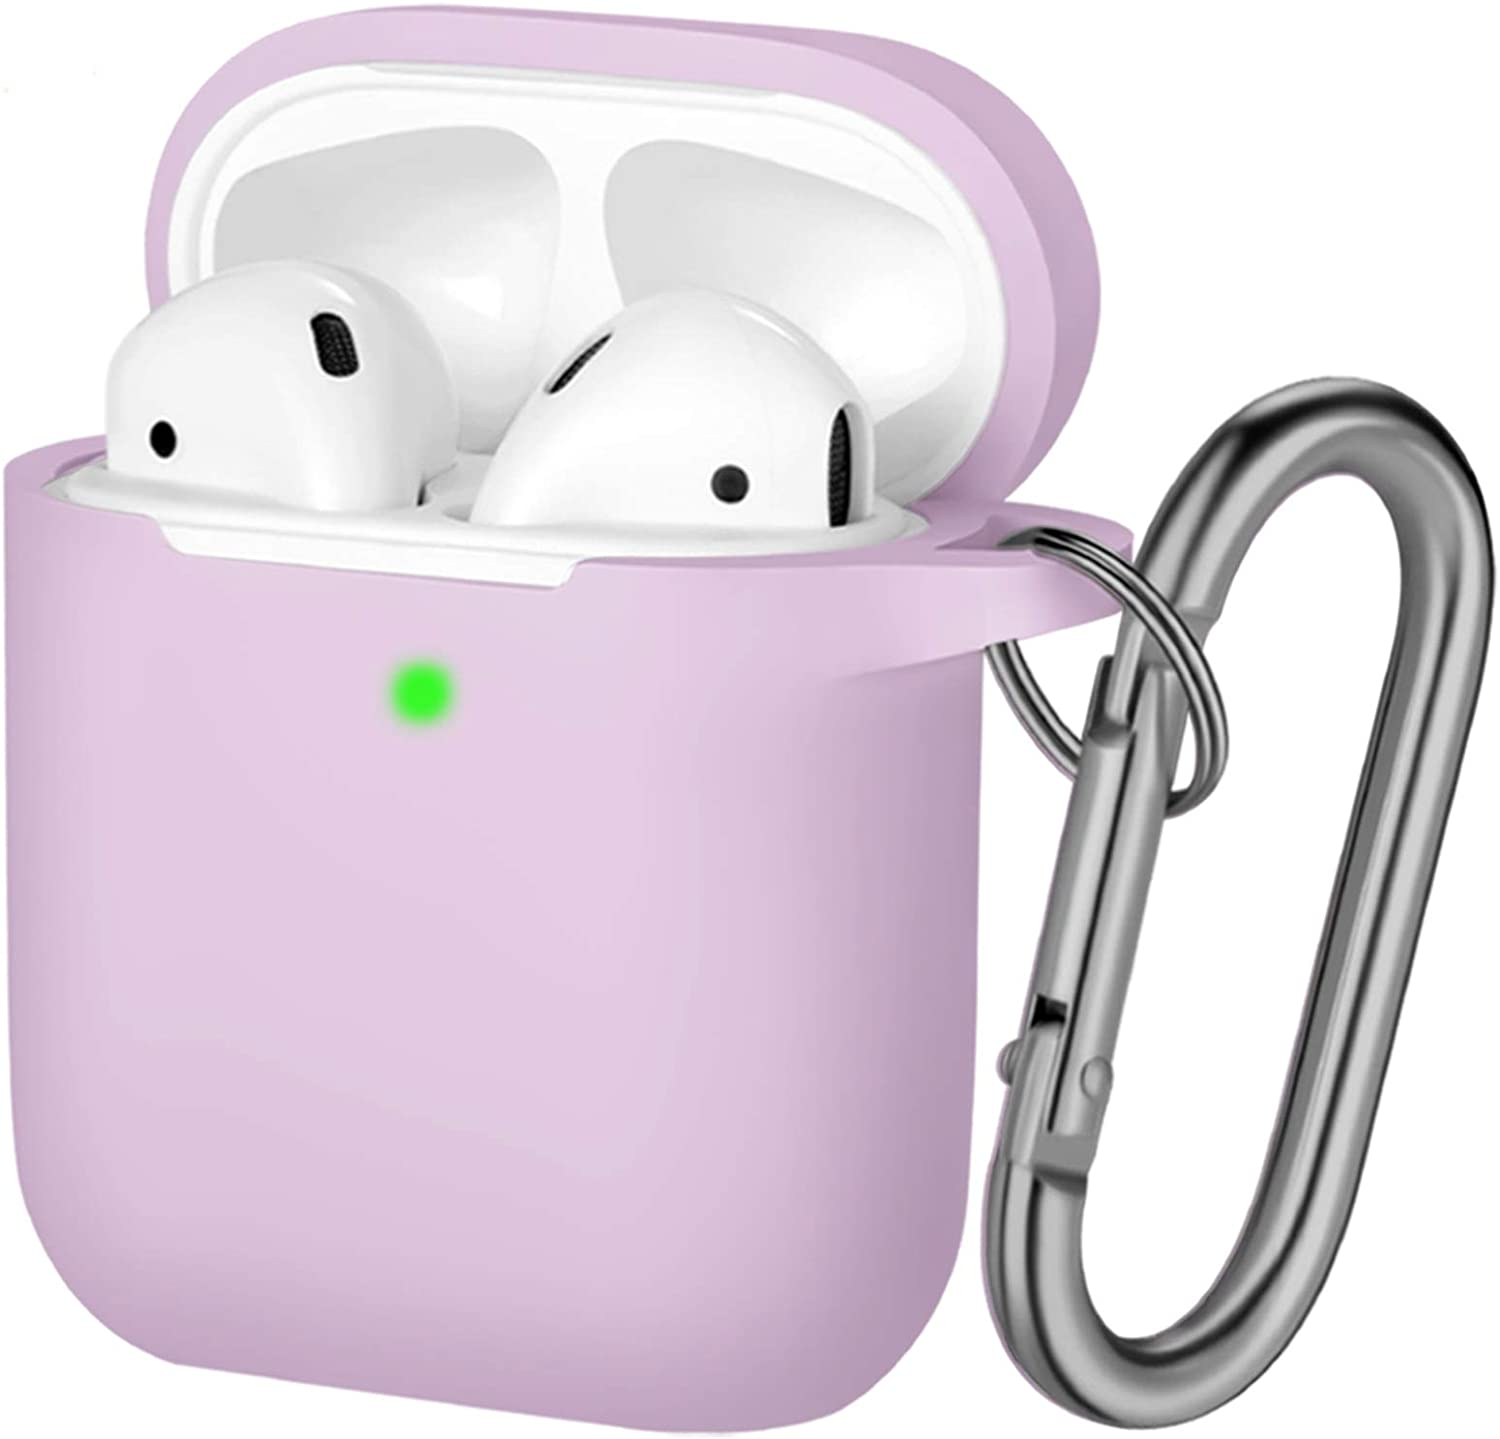 Hamile Compatible with AirPods Case [Front LED Visible] Soft Silicone Protective Cases Cover Skin Designed for Apple AirPod 2 & 1, Women Men, with Keychain (Lavender)